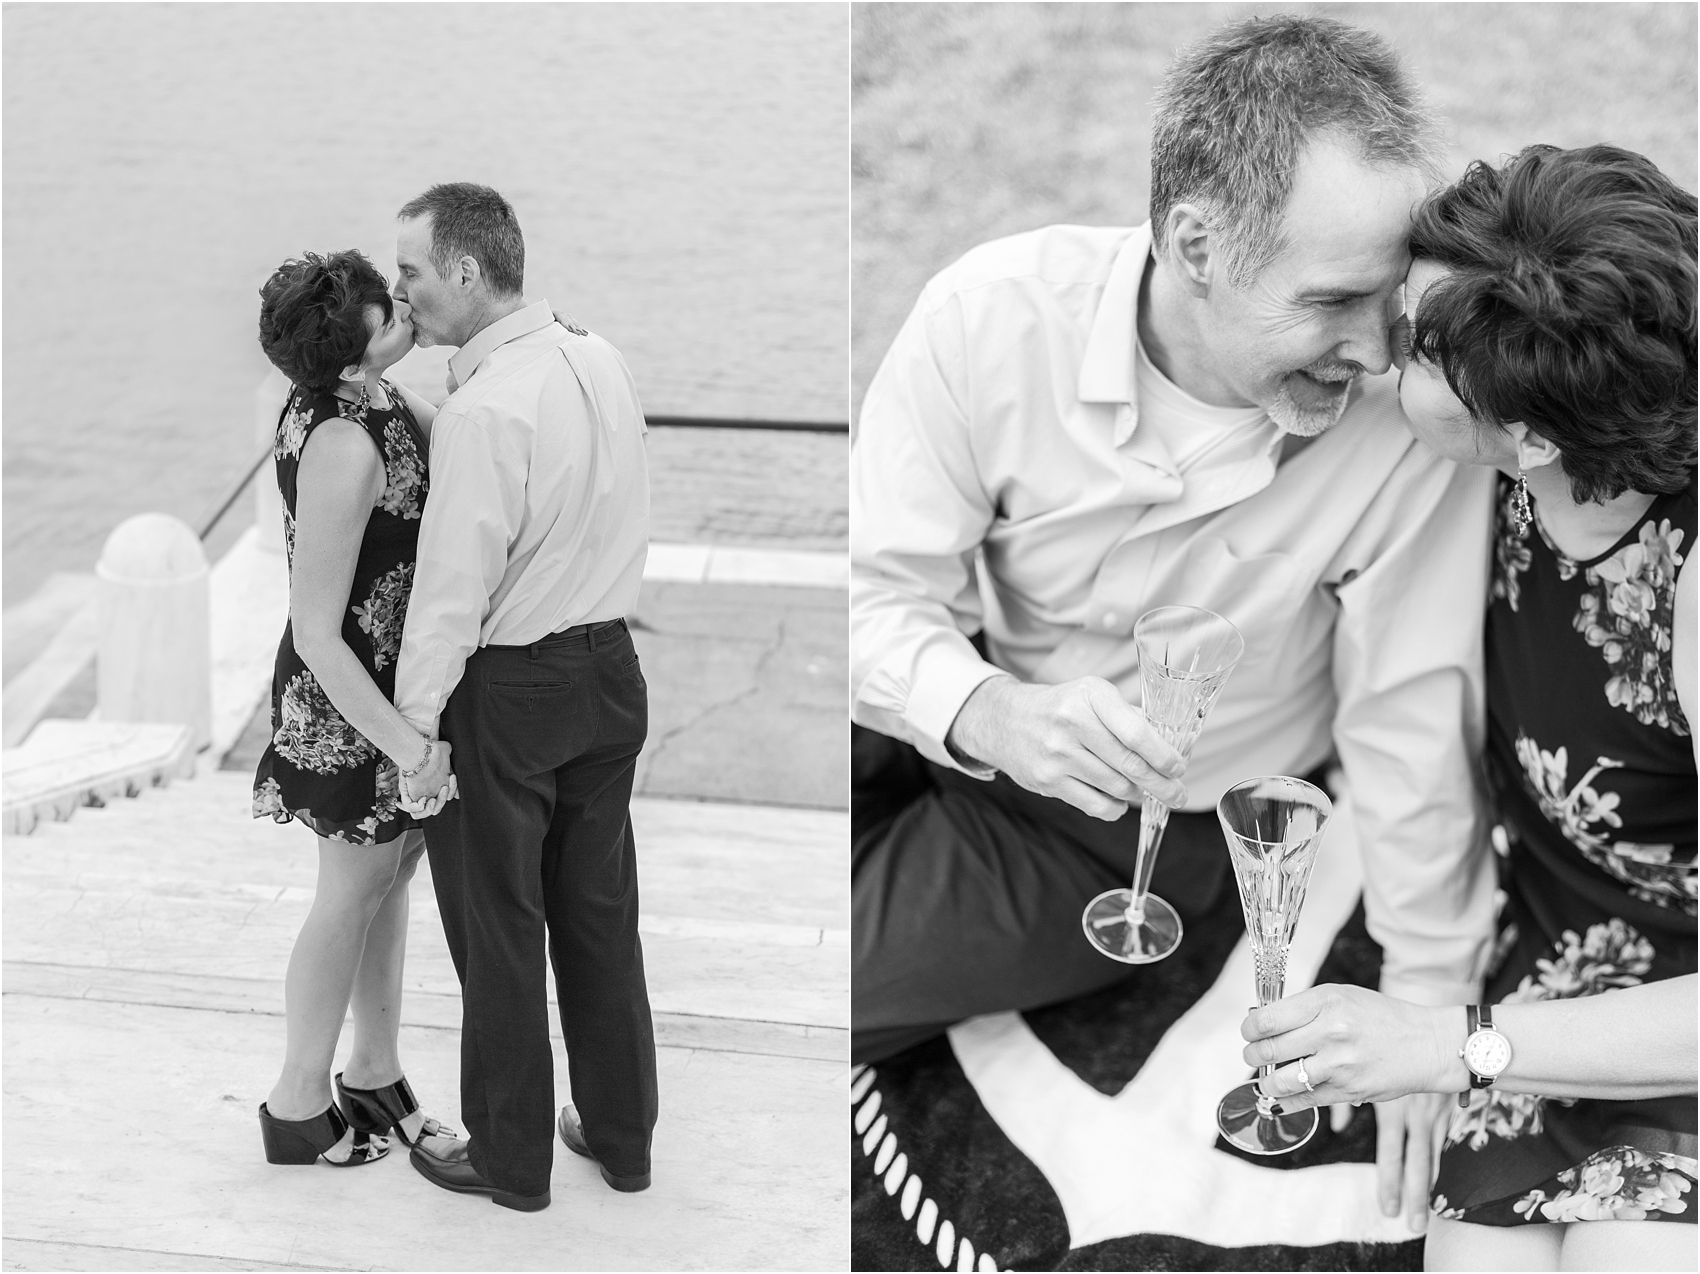 emotional-candid-romantic-engagement-photos-in-detroit-chicago-northern-michigan-by-courtney-carolyn-photography_0041.jpg